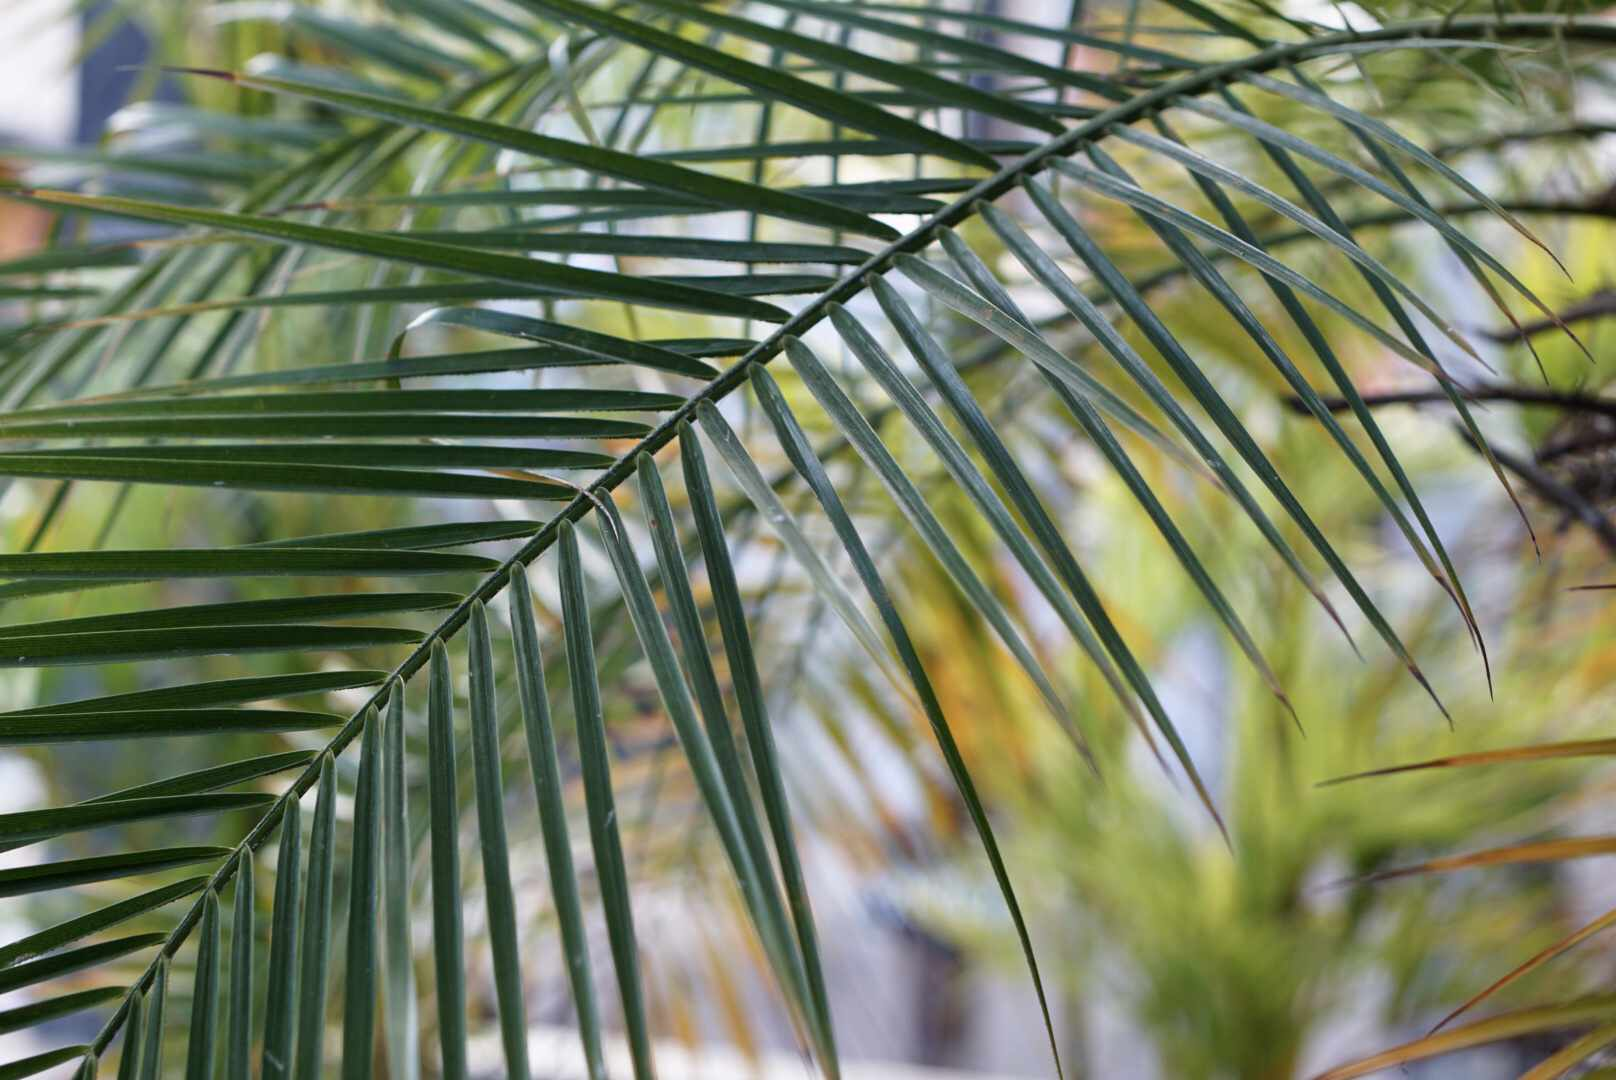 Robellini palm tree fronds with long and thin leaves closeup